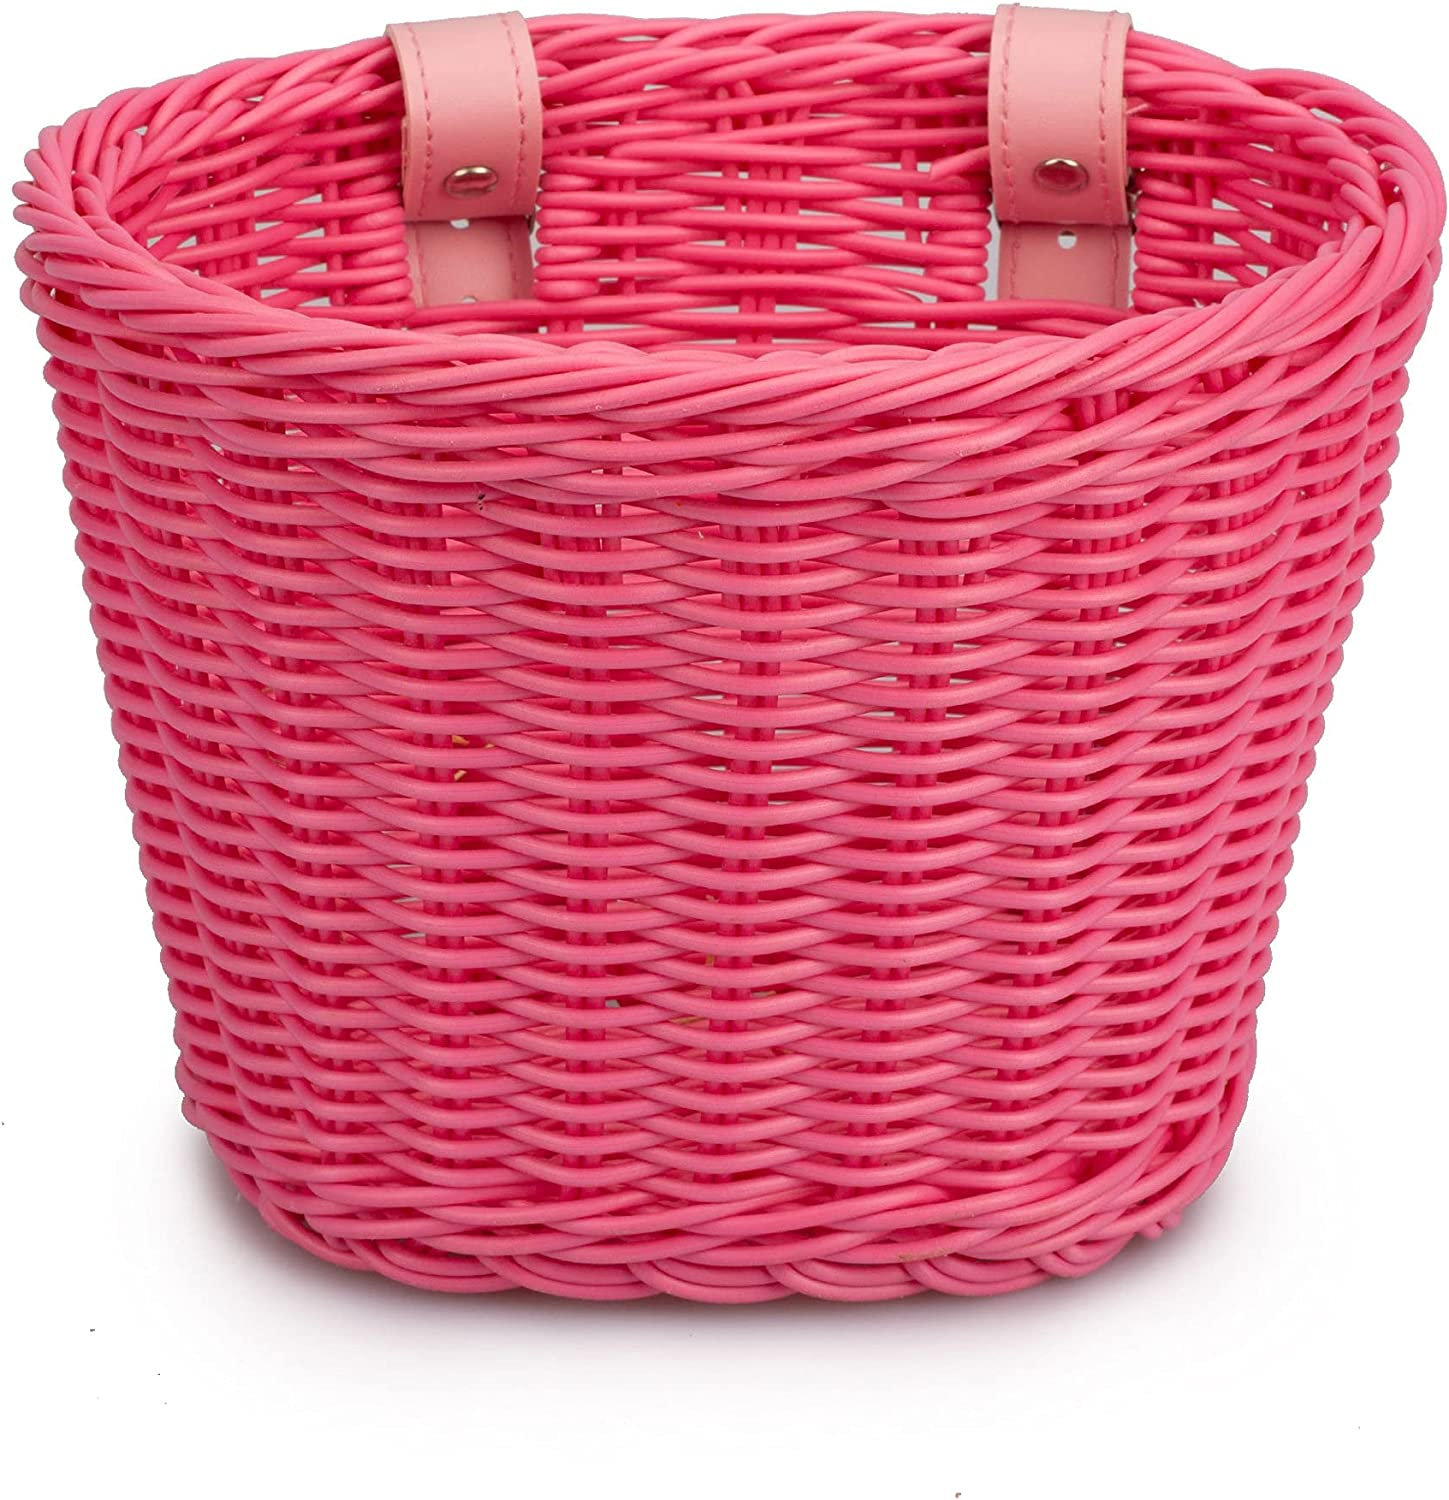 Bike Front Basket Girls Latest item Boys Small Woven Hand Direct stock discount Gifts Kids Plastic